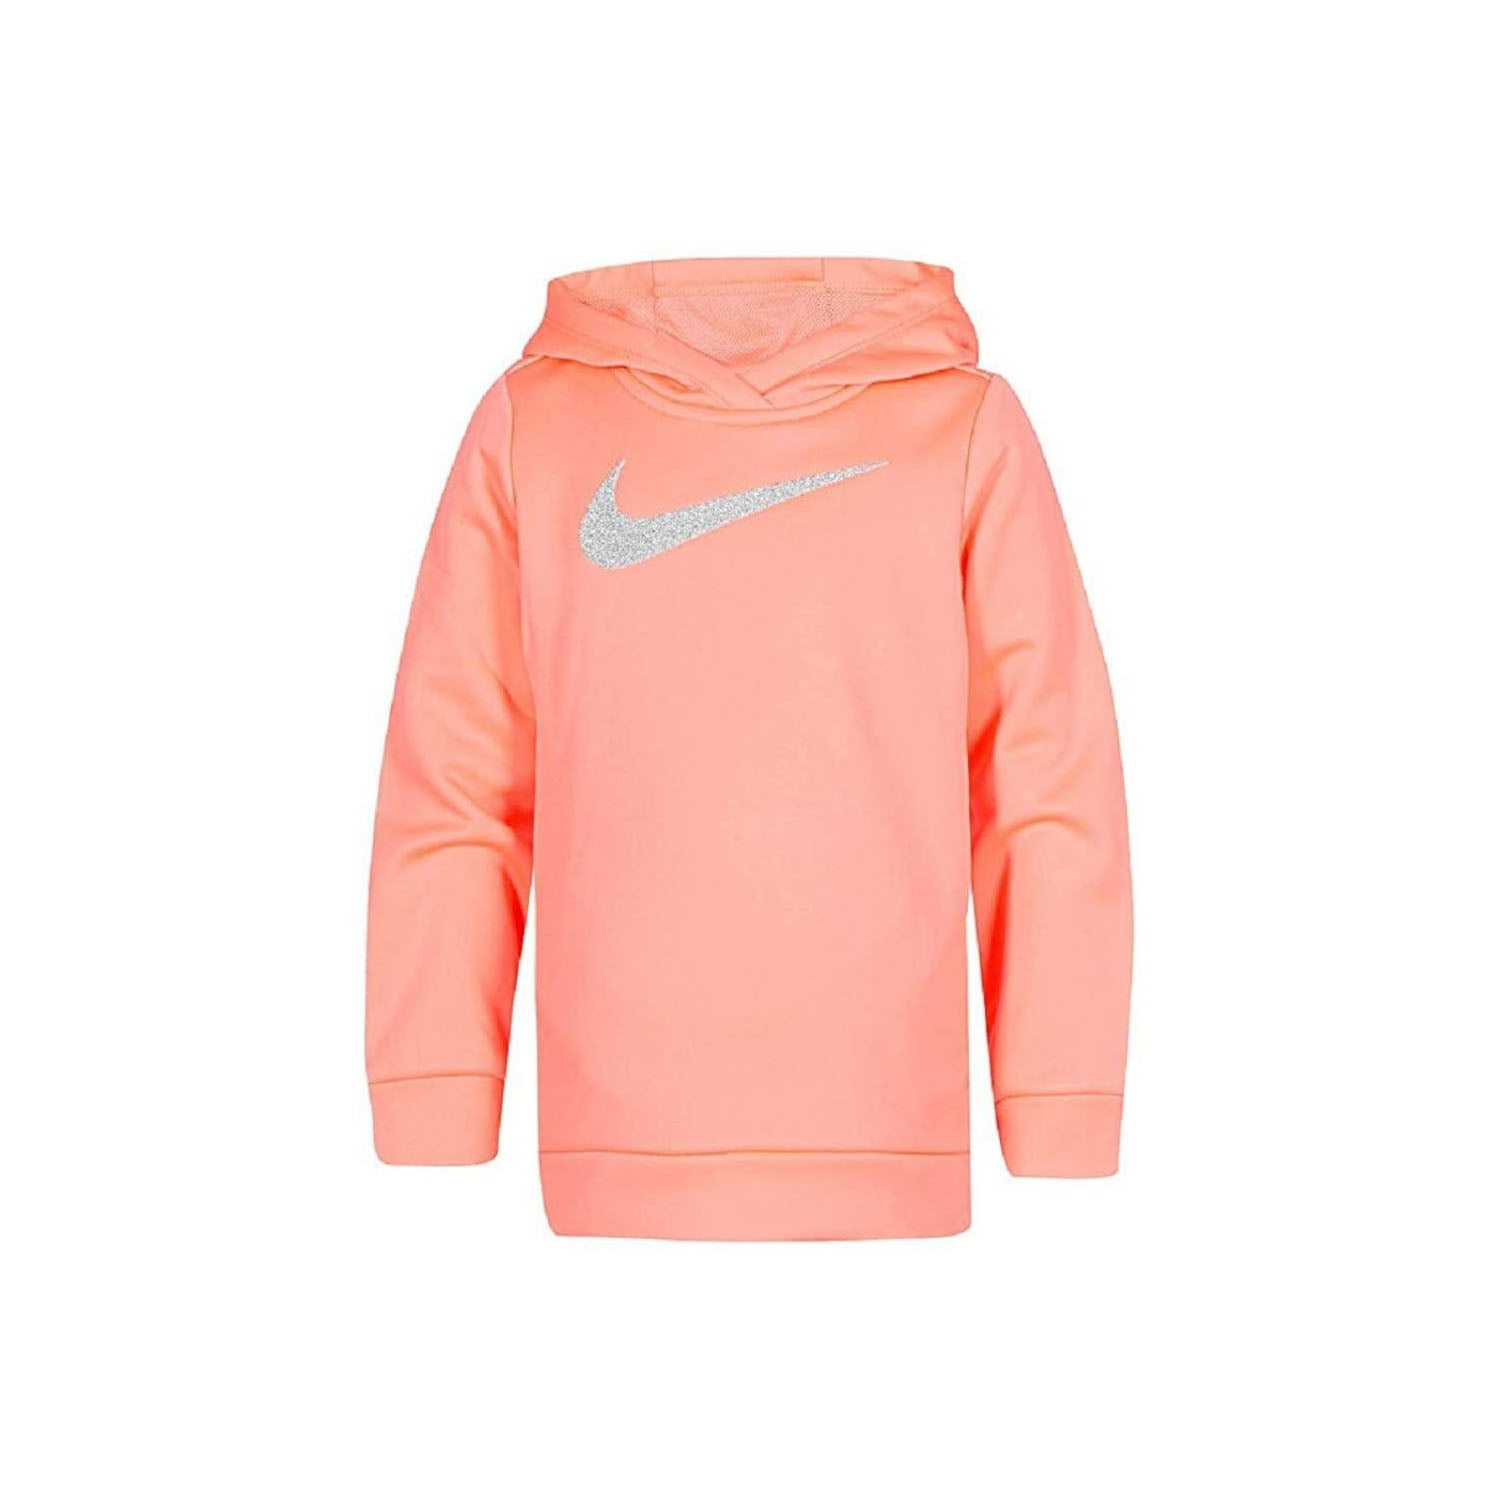 Nike Therma Girls Ashen Slate Gray Swoosh Hoodie Sweatshirt Jacket Dri-fit